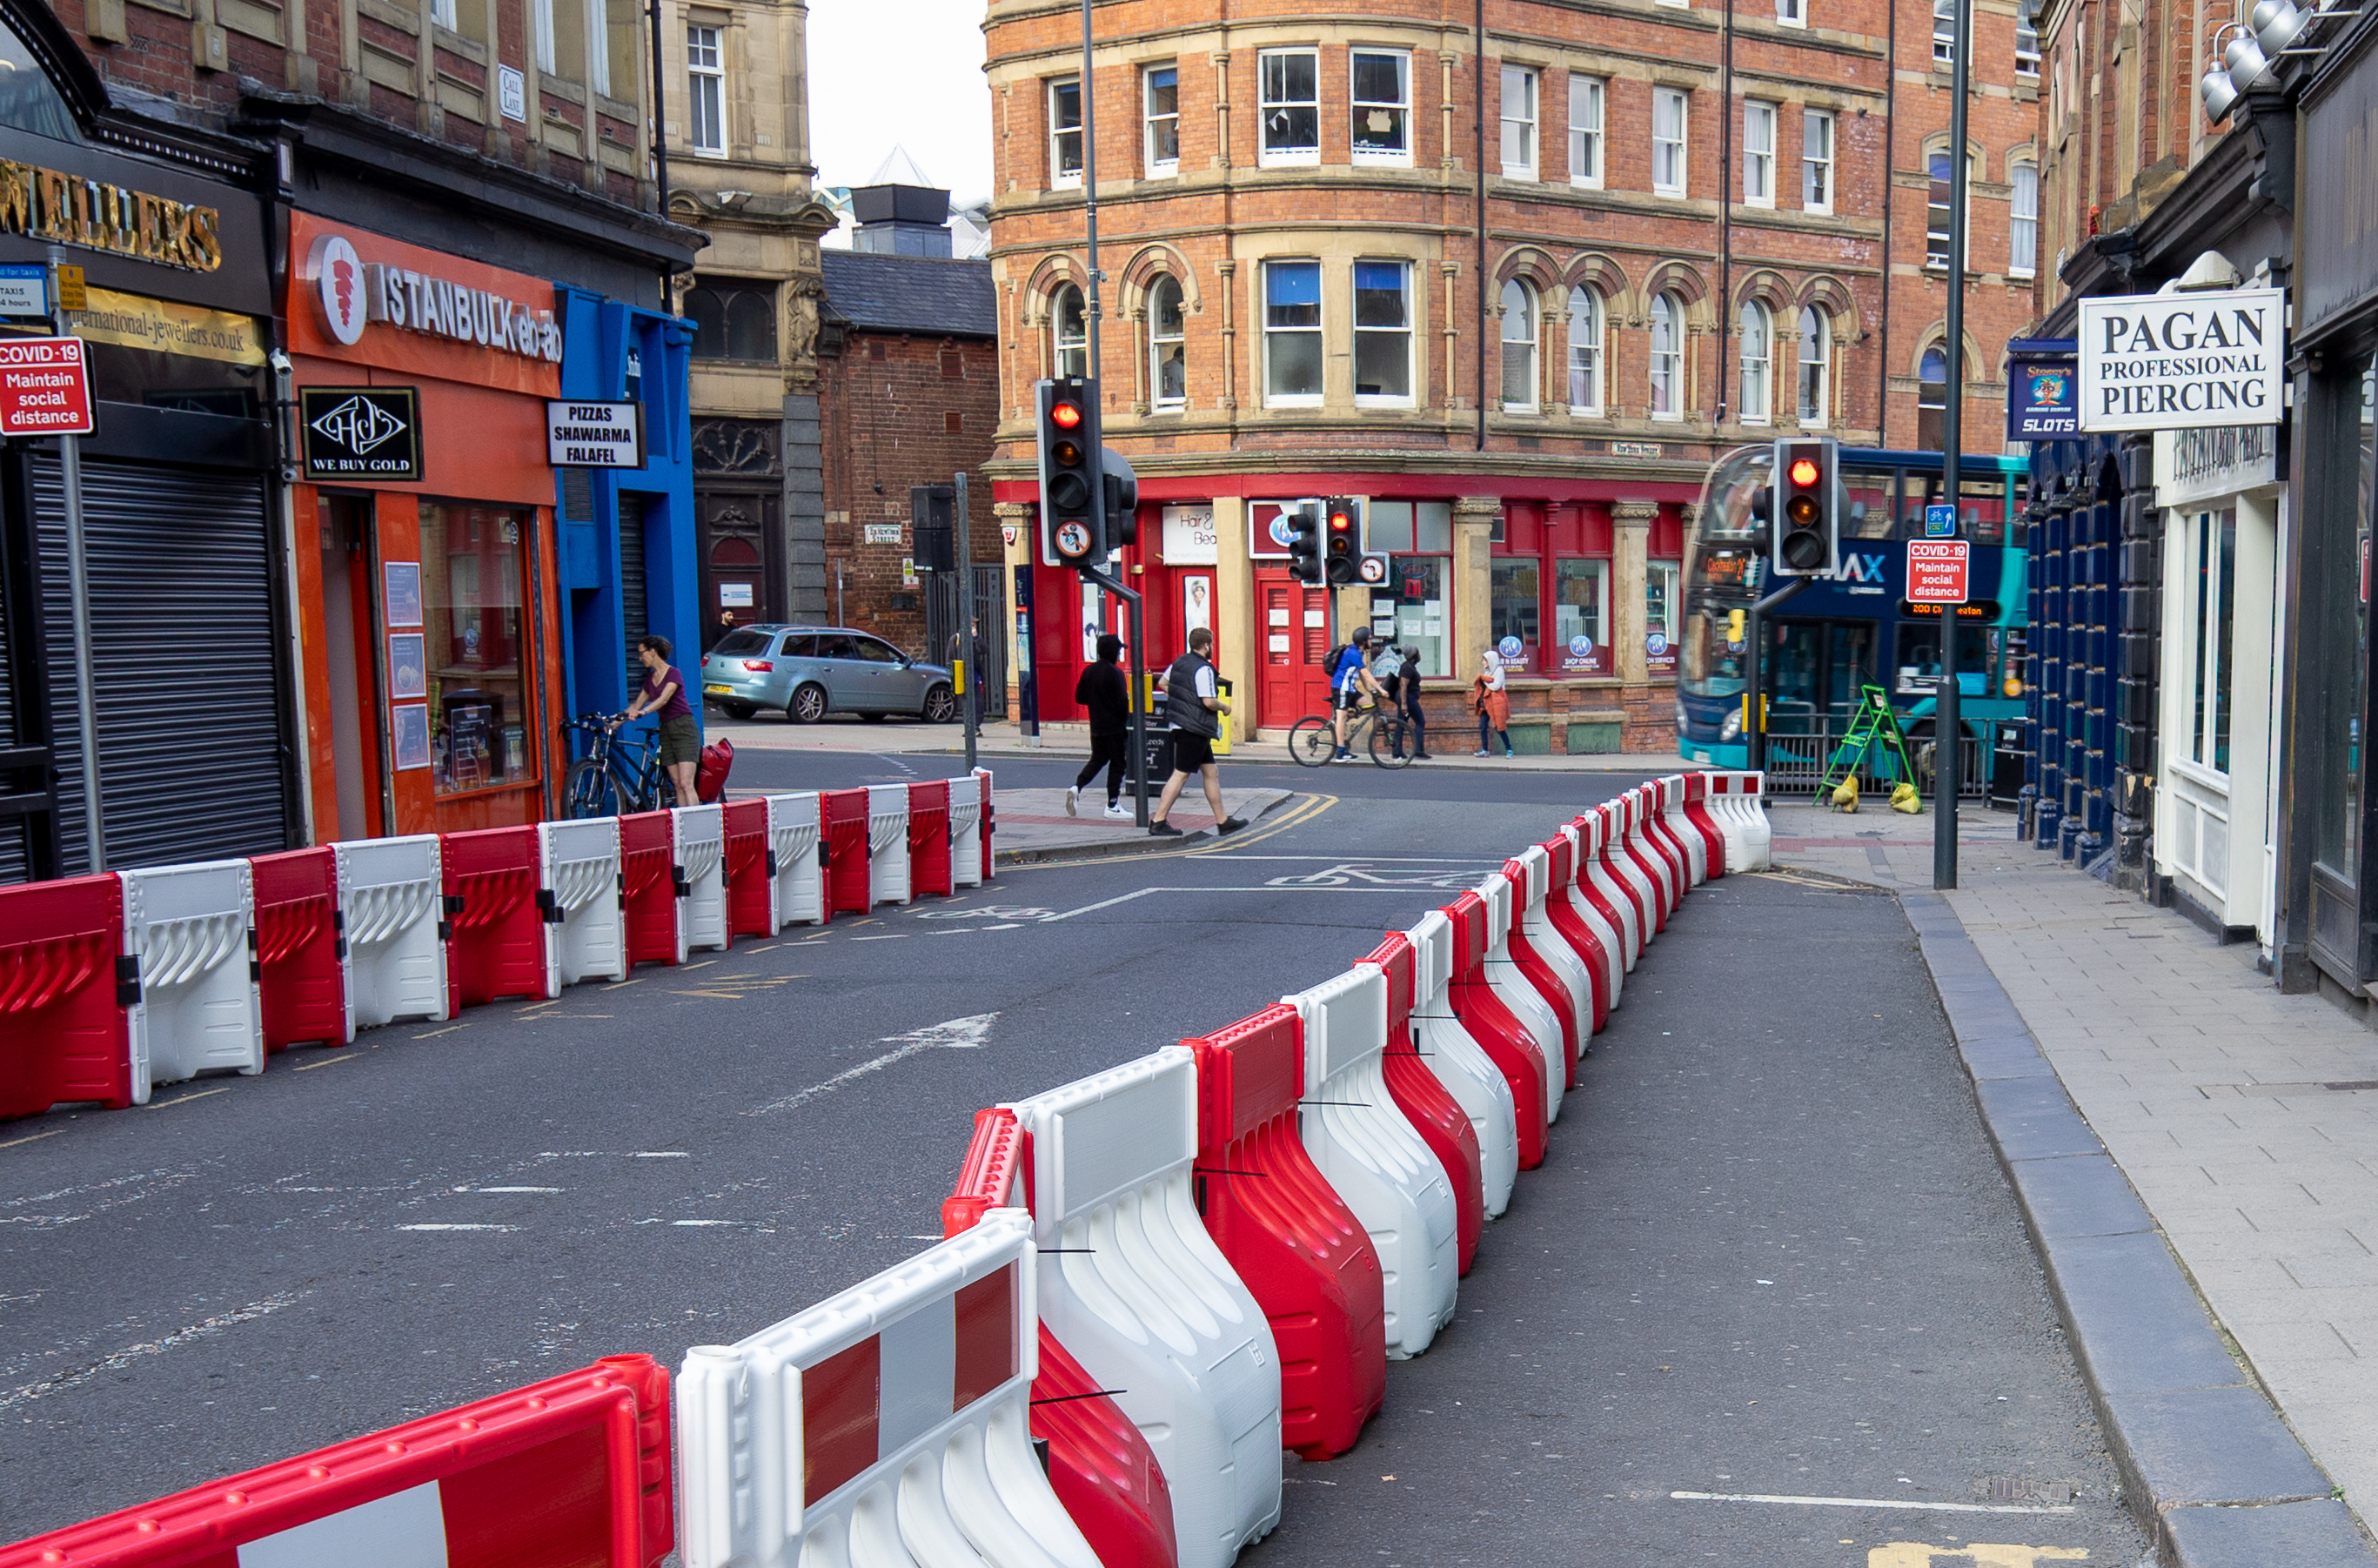 Consultation starts on next phase of emergency walking and cycling plans